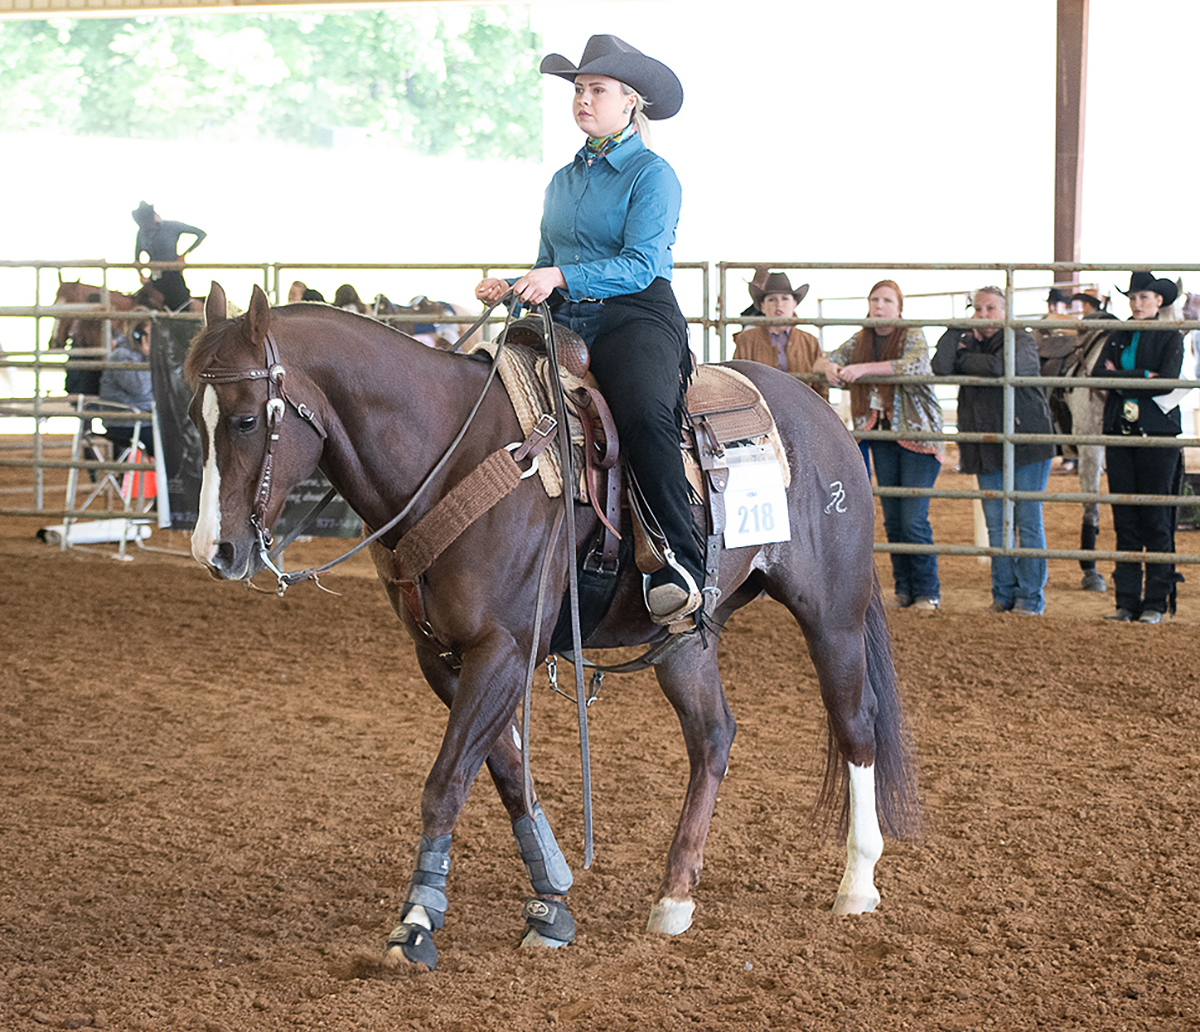 MTSU junior Zee Petree of Knoxville, Tenn., earned an individual championship and two fourth-place finishes at the 2021 YEDA Western Collegiate Celebration, hosted by the Youth Equestrian Development Association recently in Cleveland, Tenn. (Submitted photo by Dawn Nieman)